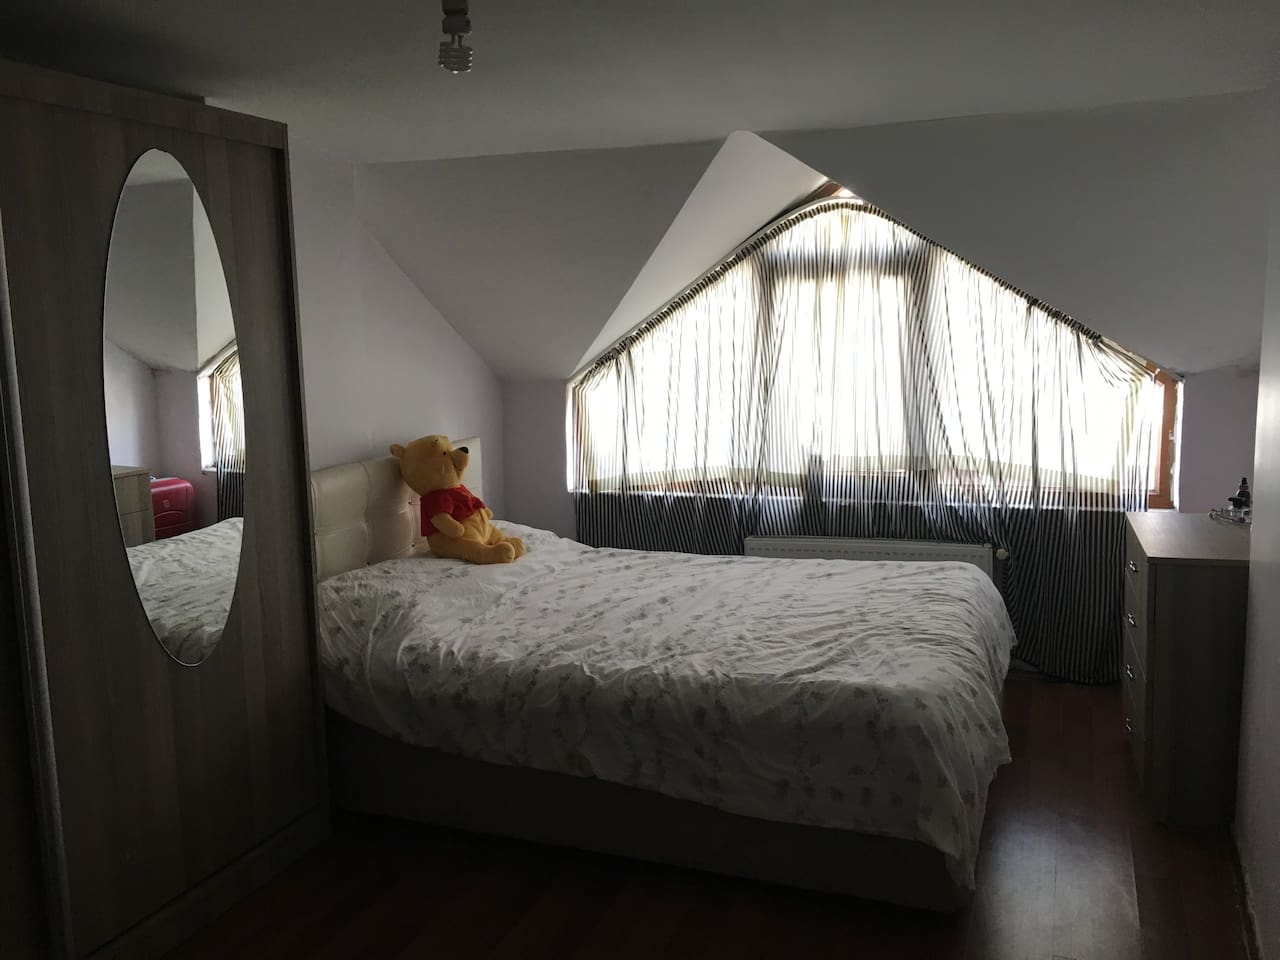 Main bedroom for two person